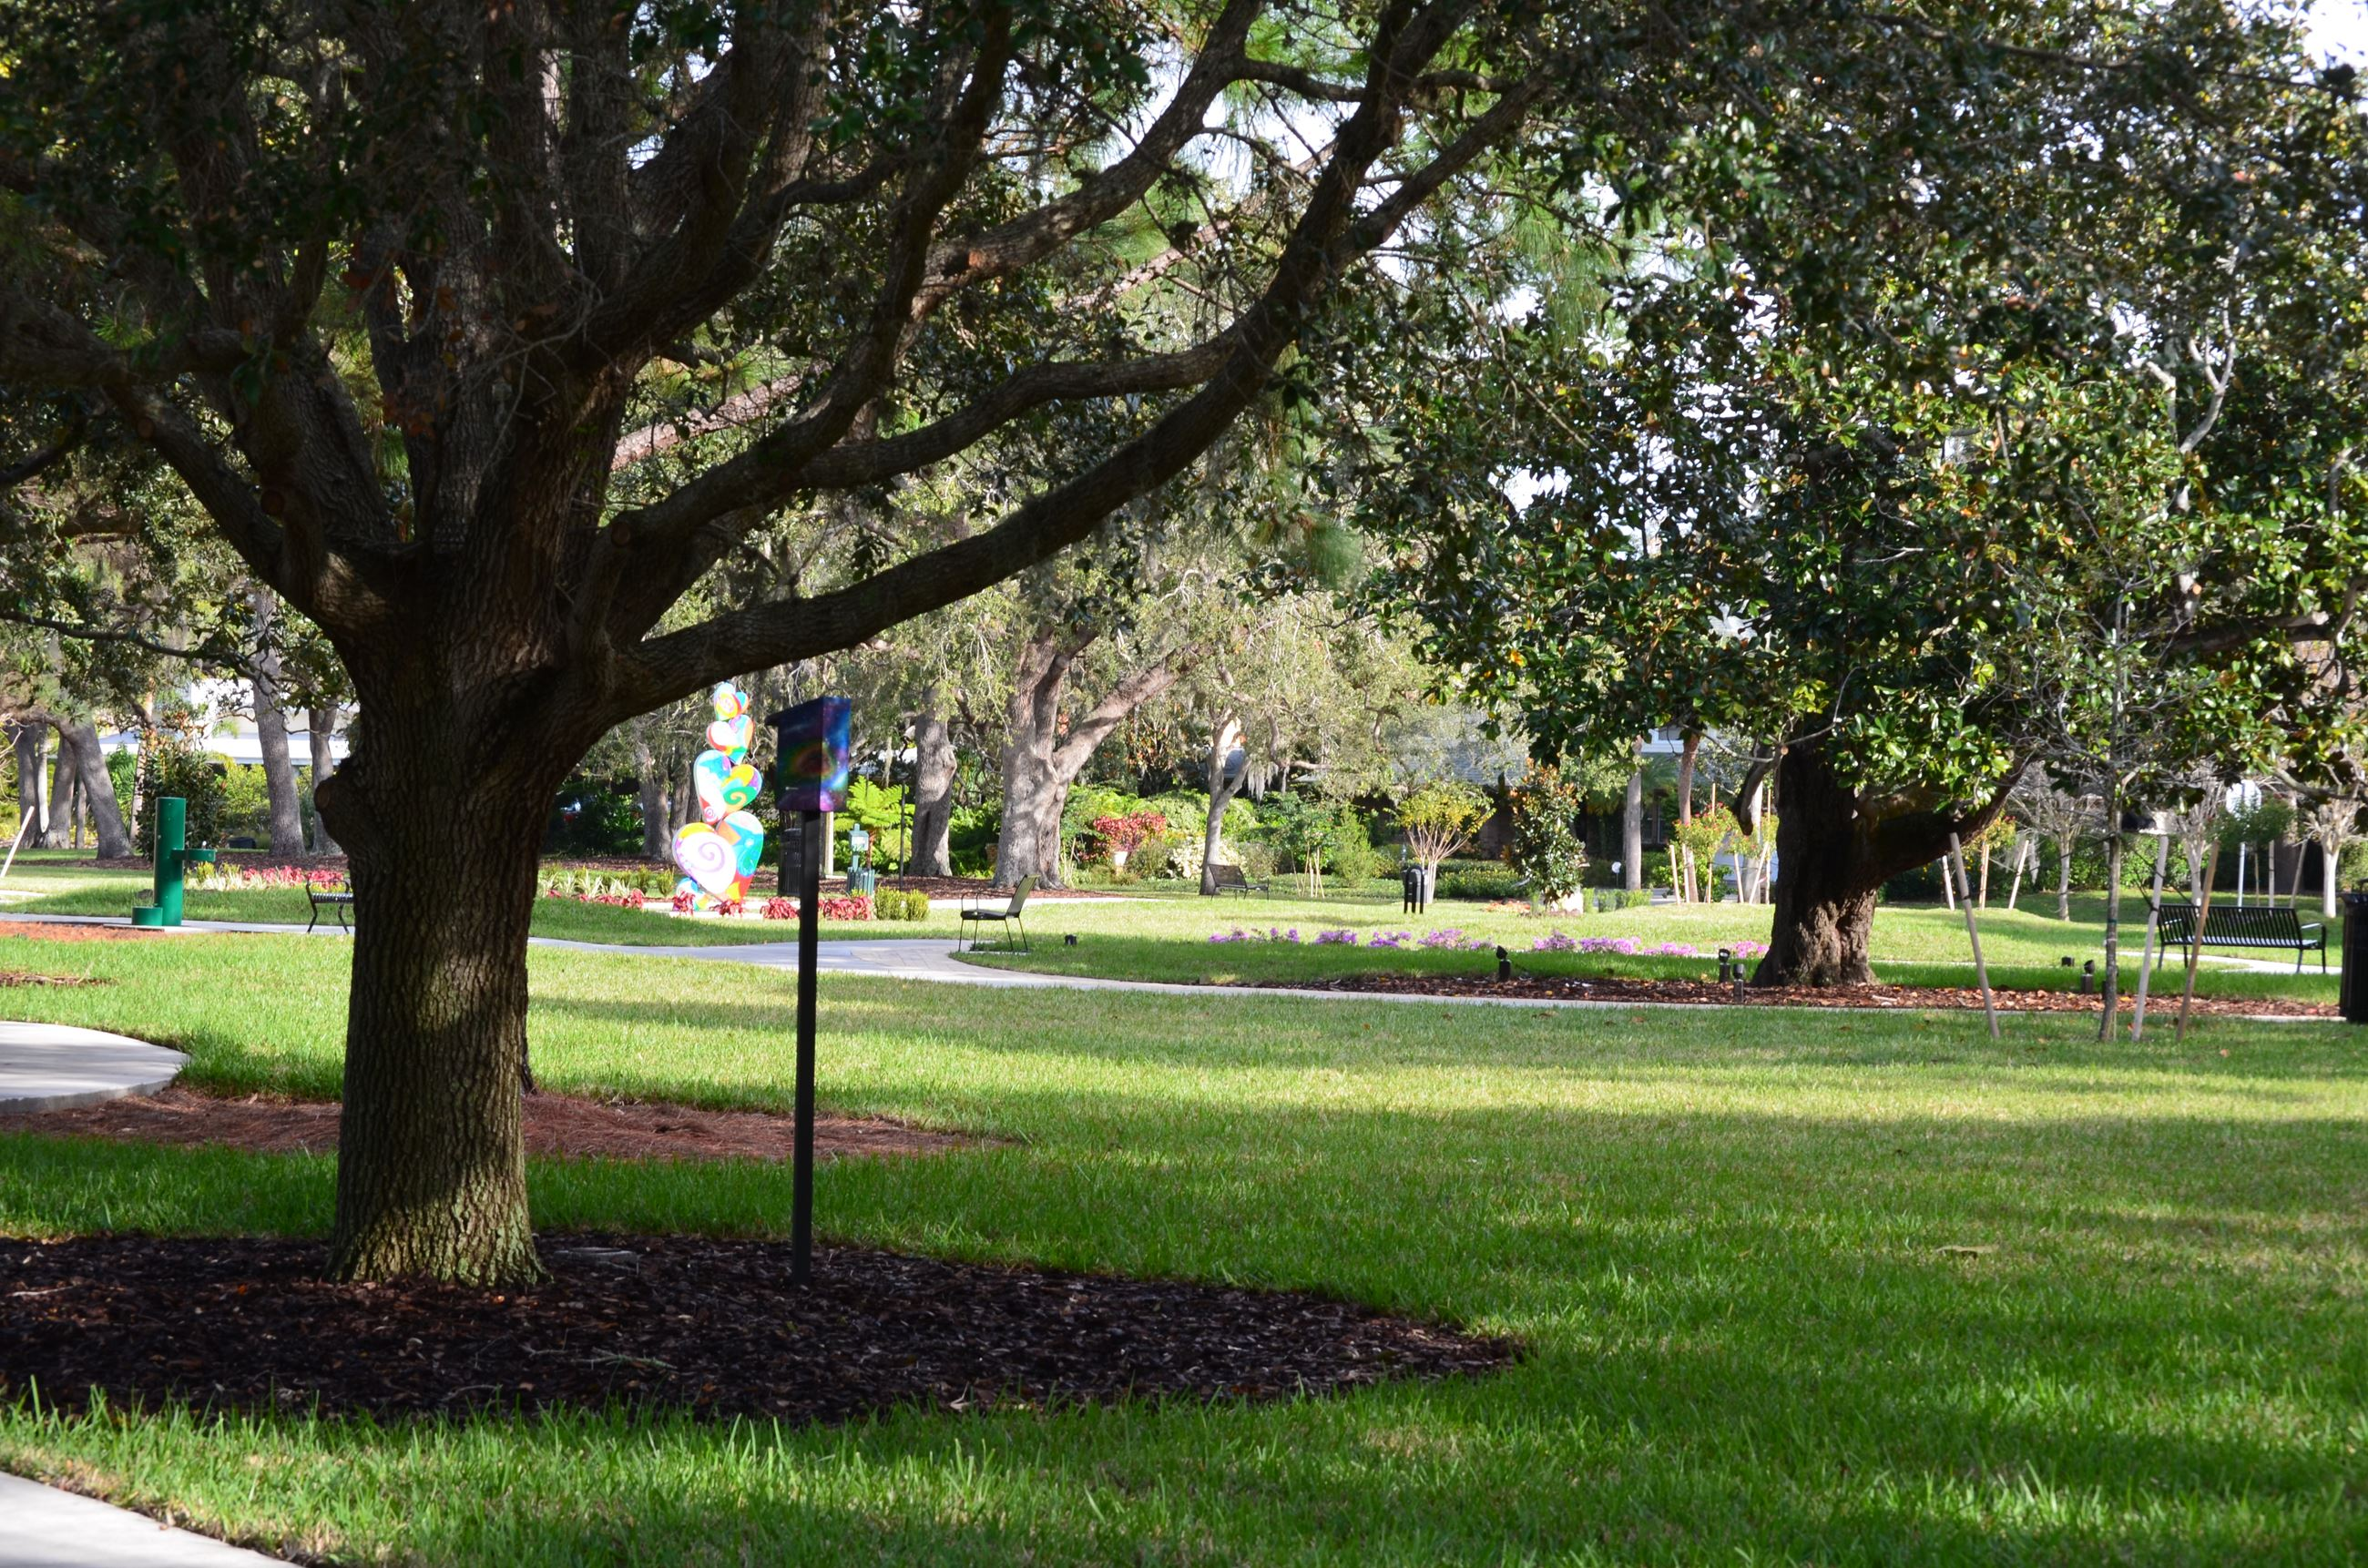 A view of Doyle Park that focuses on an oak tree with grassy spaces in the background